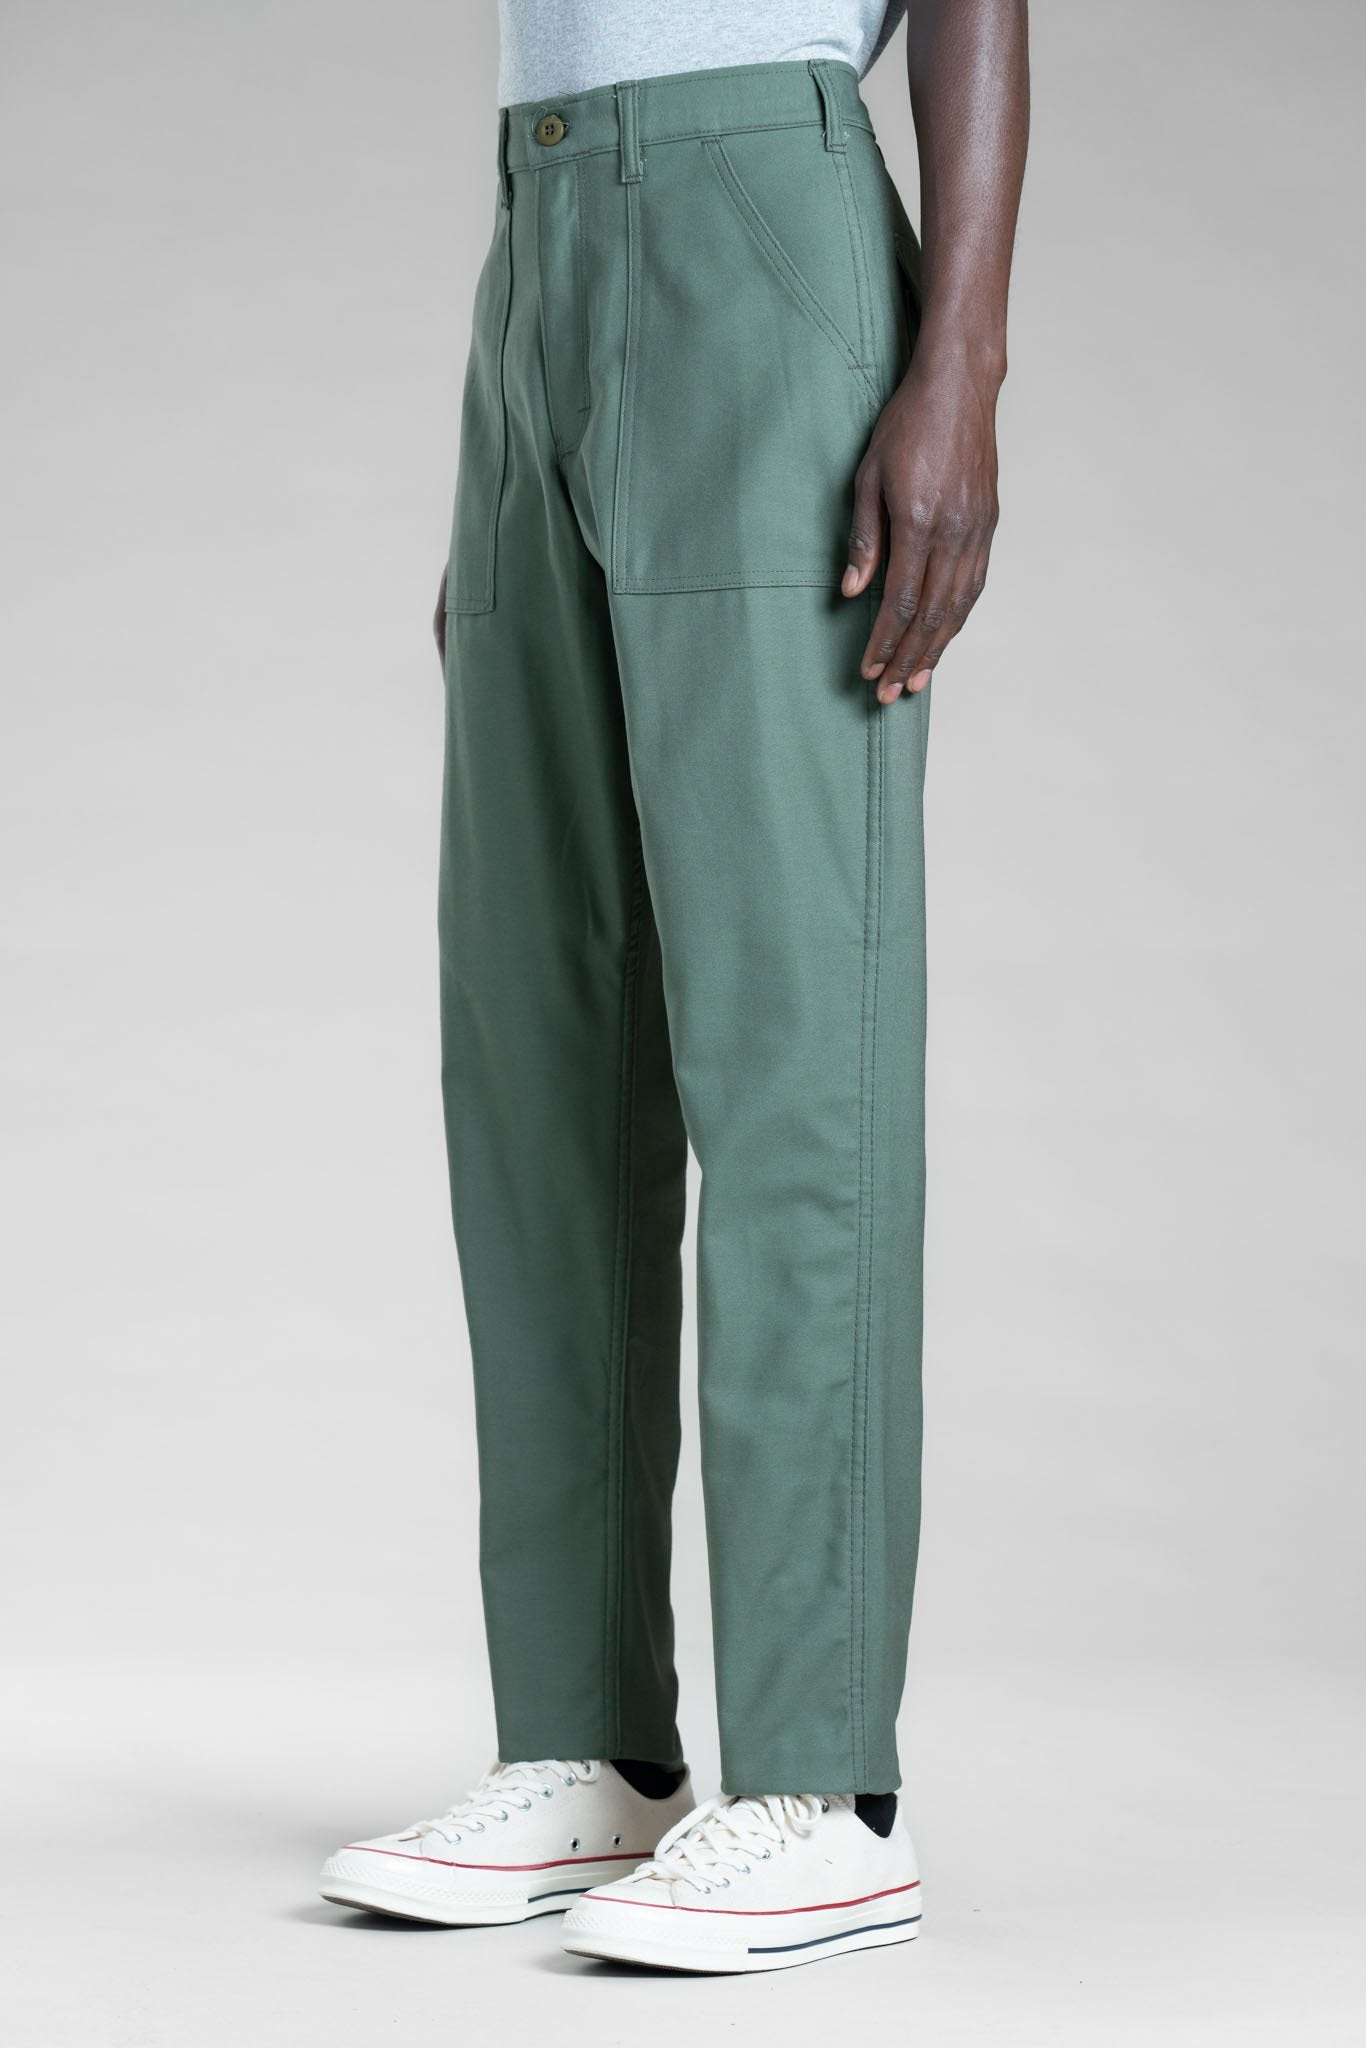 stan ray - slim fit fatigue pant 3